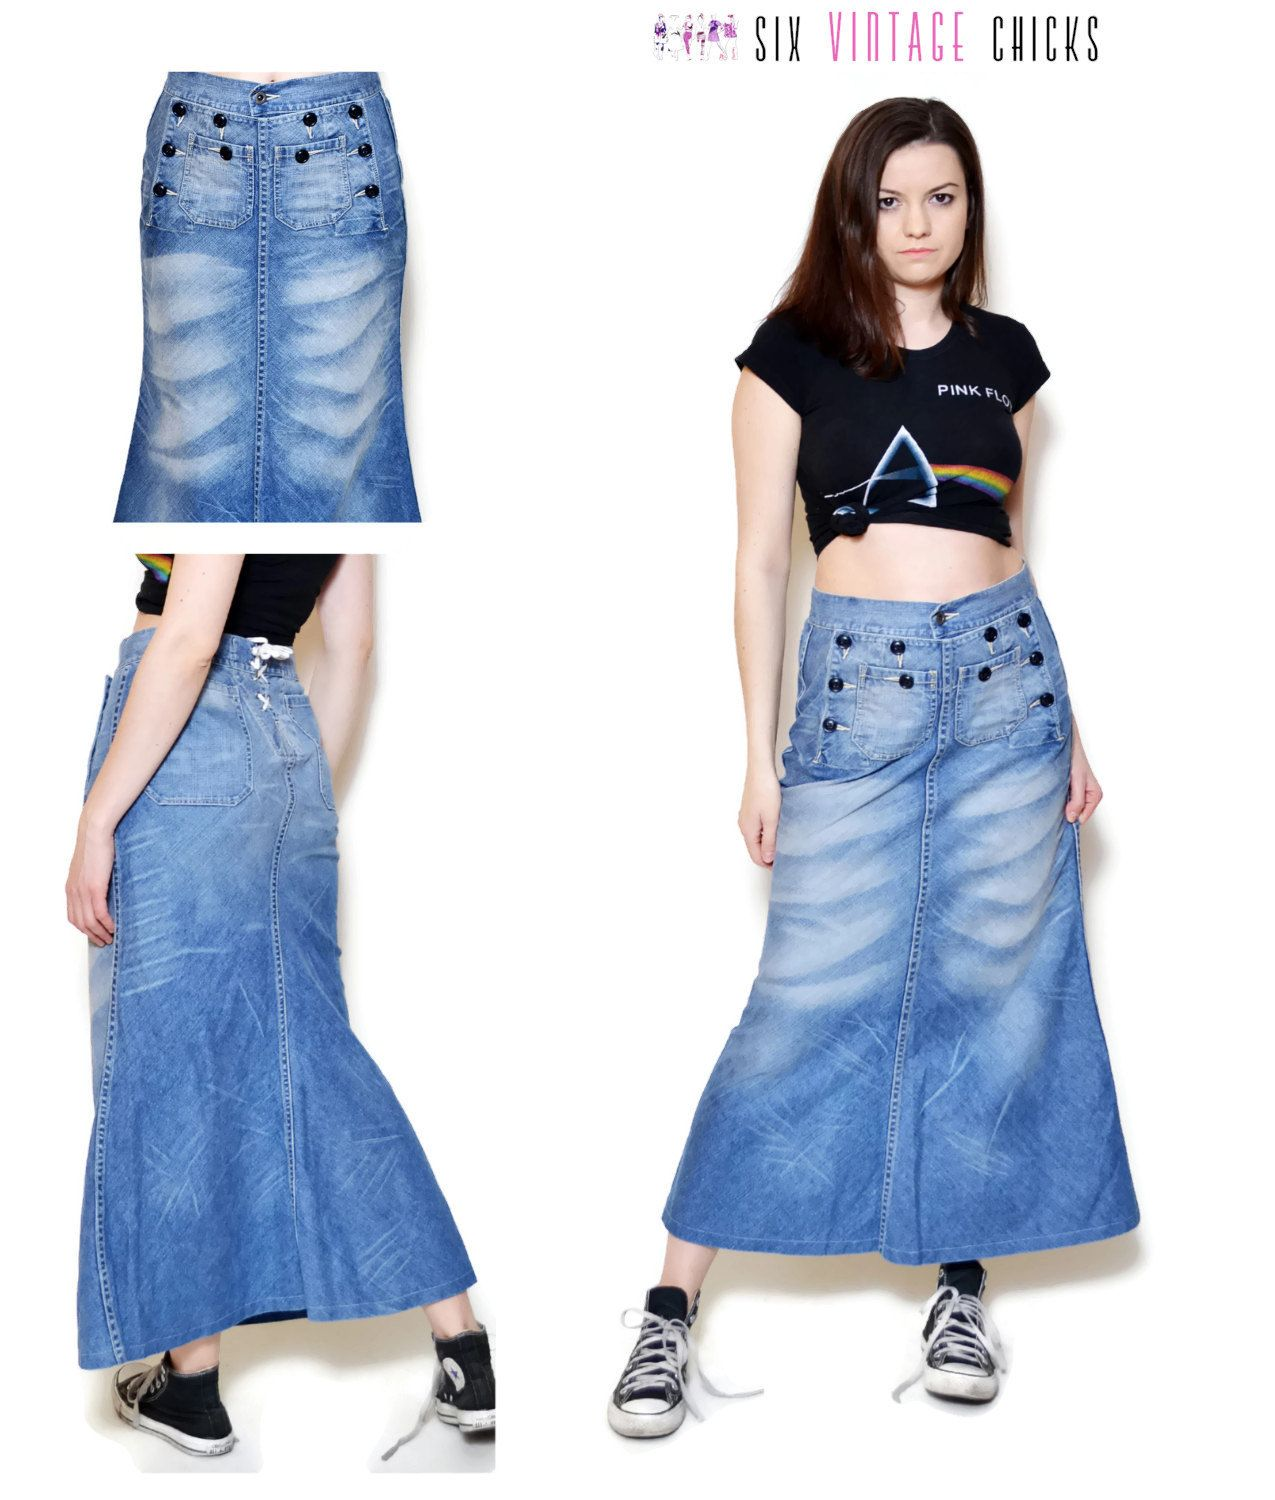 195159de12d Denim Skirt Maxi Skirt jean skirt vintage clothing women clothing sexy  clothes 90s Size S 36 by SixVintageChicks on Etsy